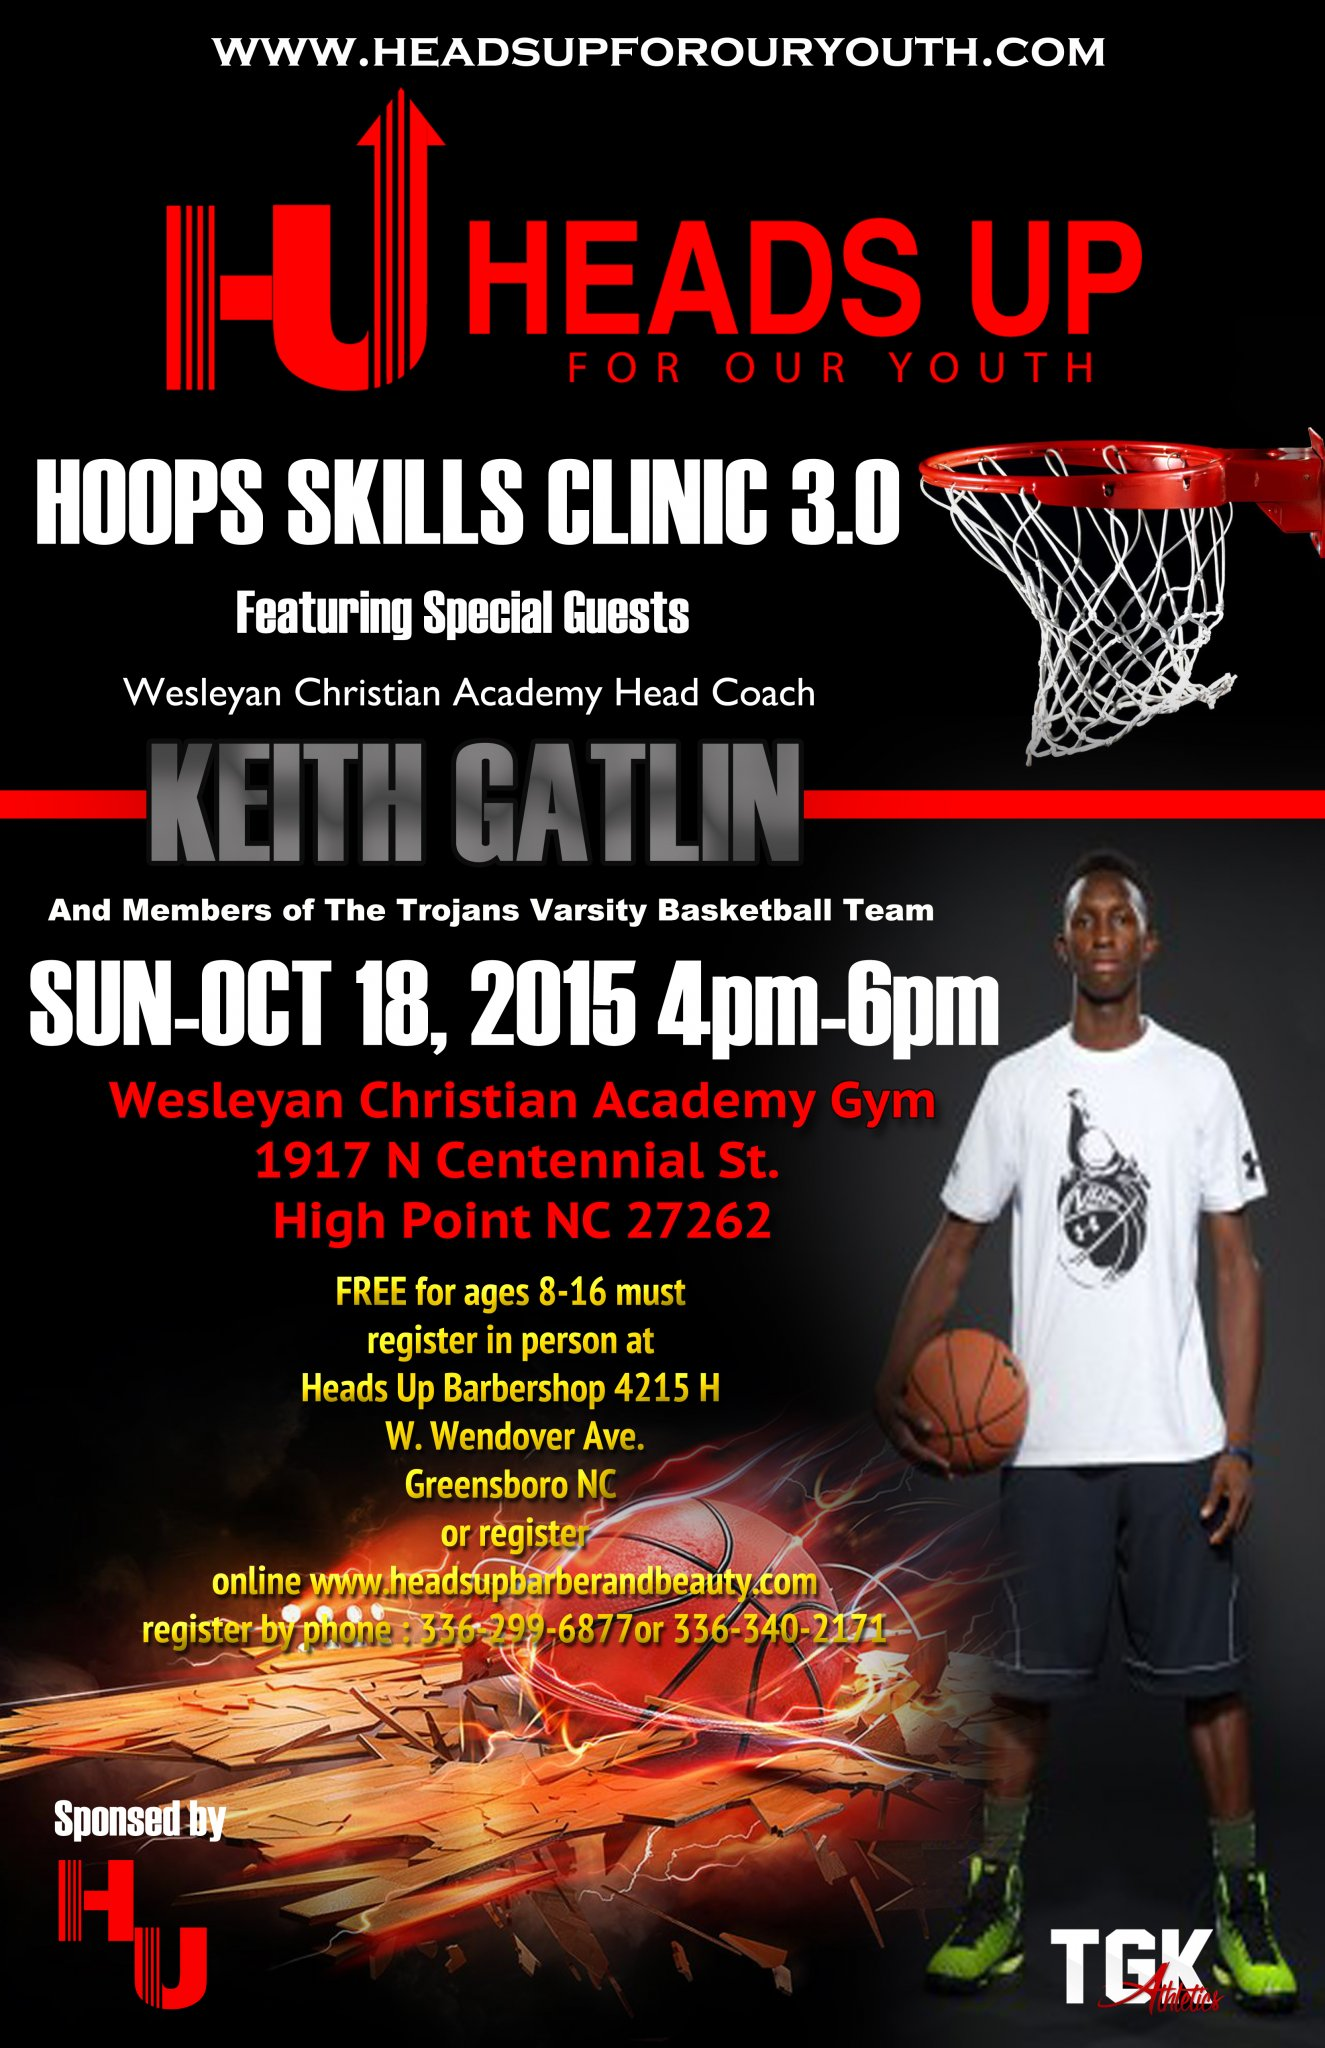 HU/TGK Hoops Skills and Drills Clinic 3.0 Featuring Keith Gatlin